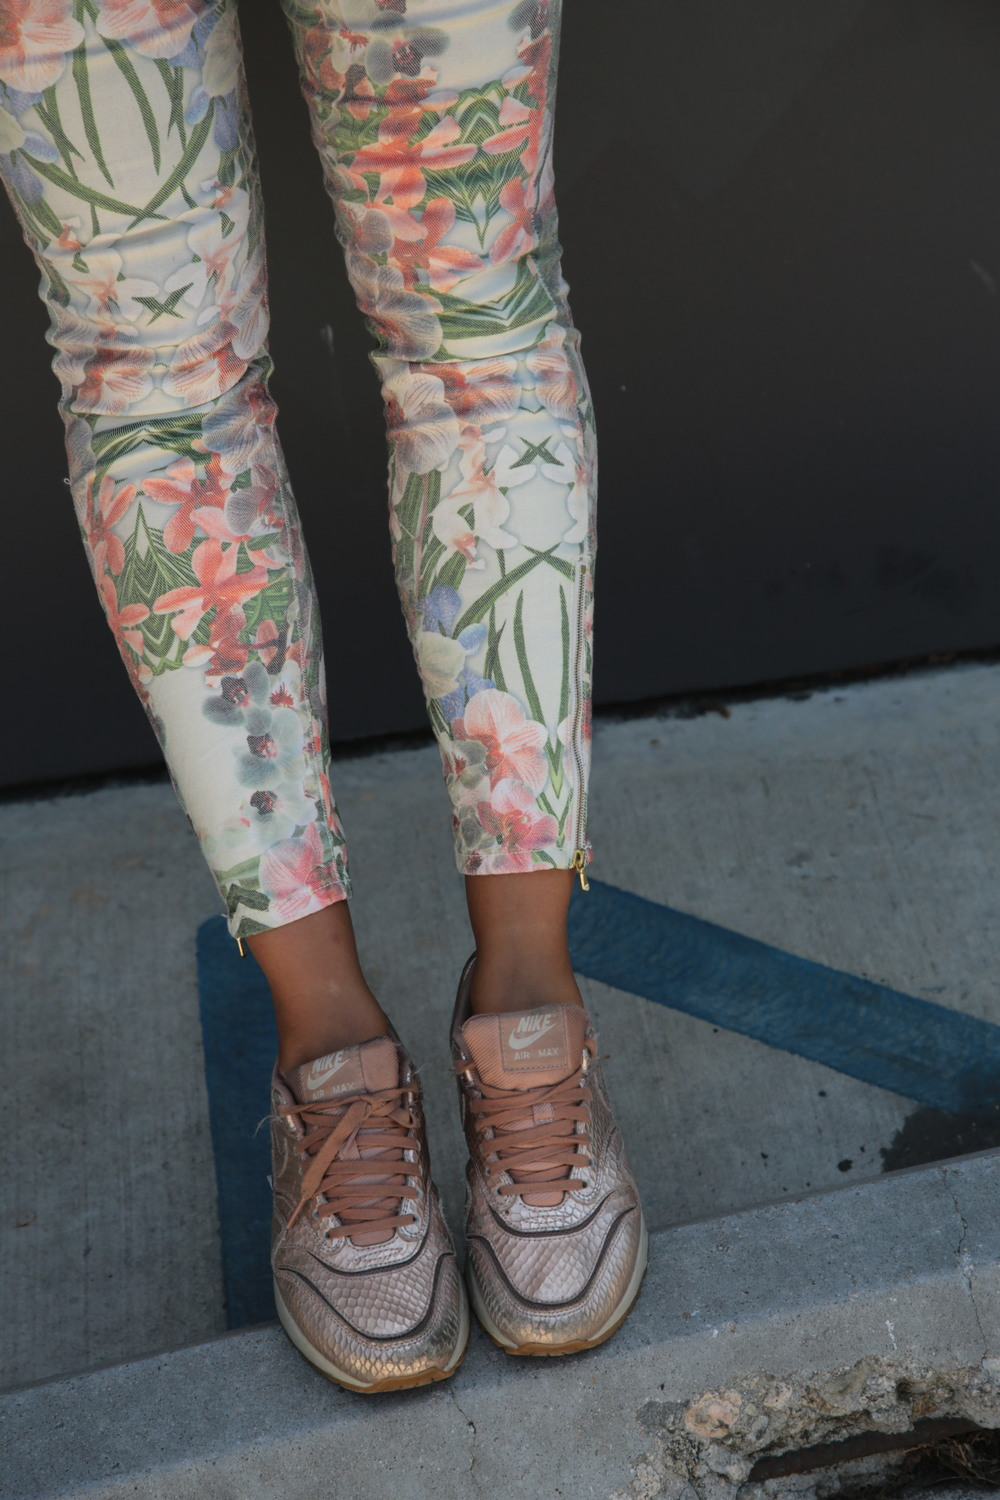 VANESSA-BELETIC-STYLE-ROSE-GOLD-AIRMAX-LOS-ANGELES.JPG